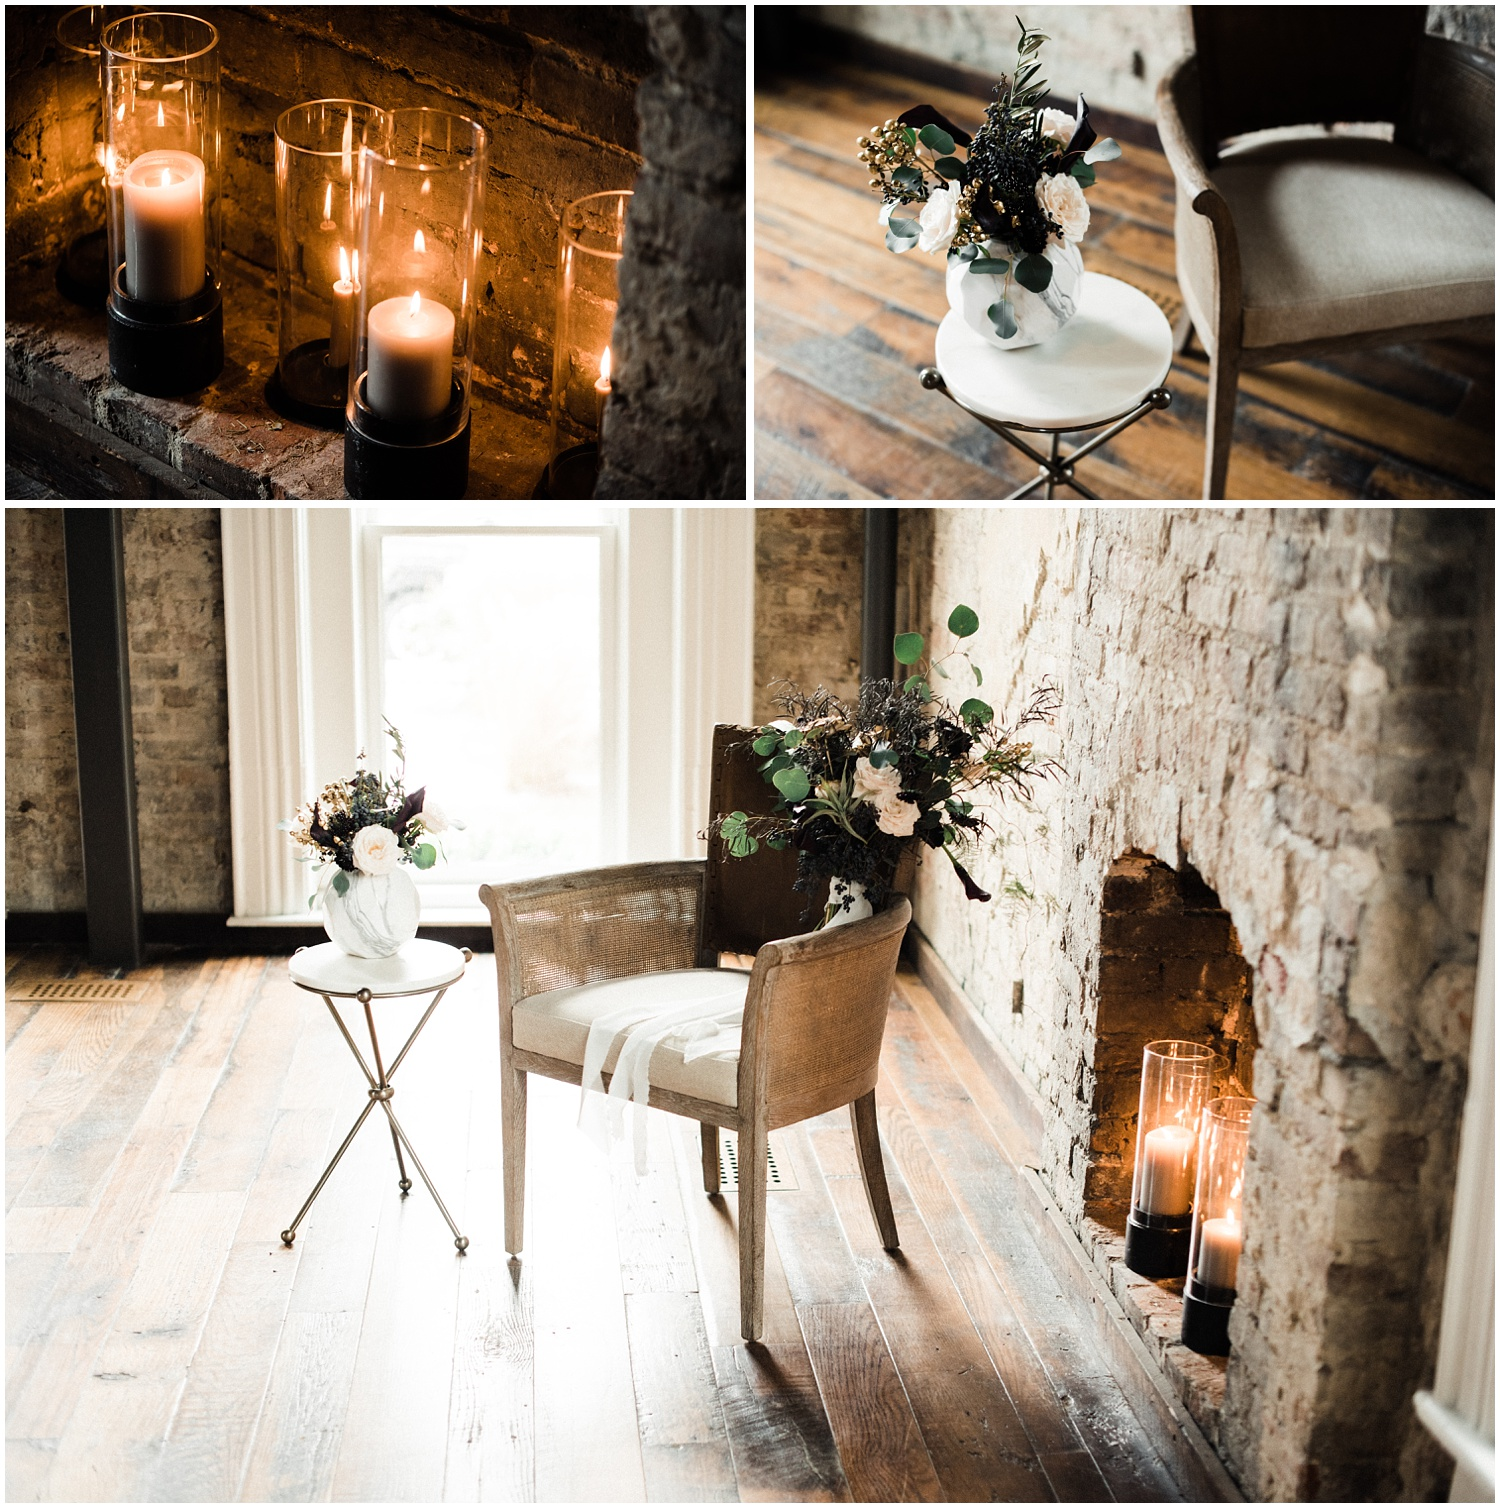 Aimee Thomas _Midwest Ohio Photographer_Modern Wedding Styled Shoot Nashville Tennessee_The Cordelle_0035.jpg